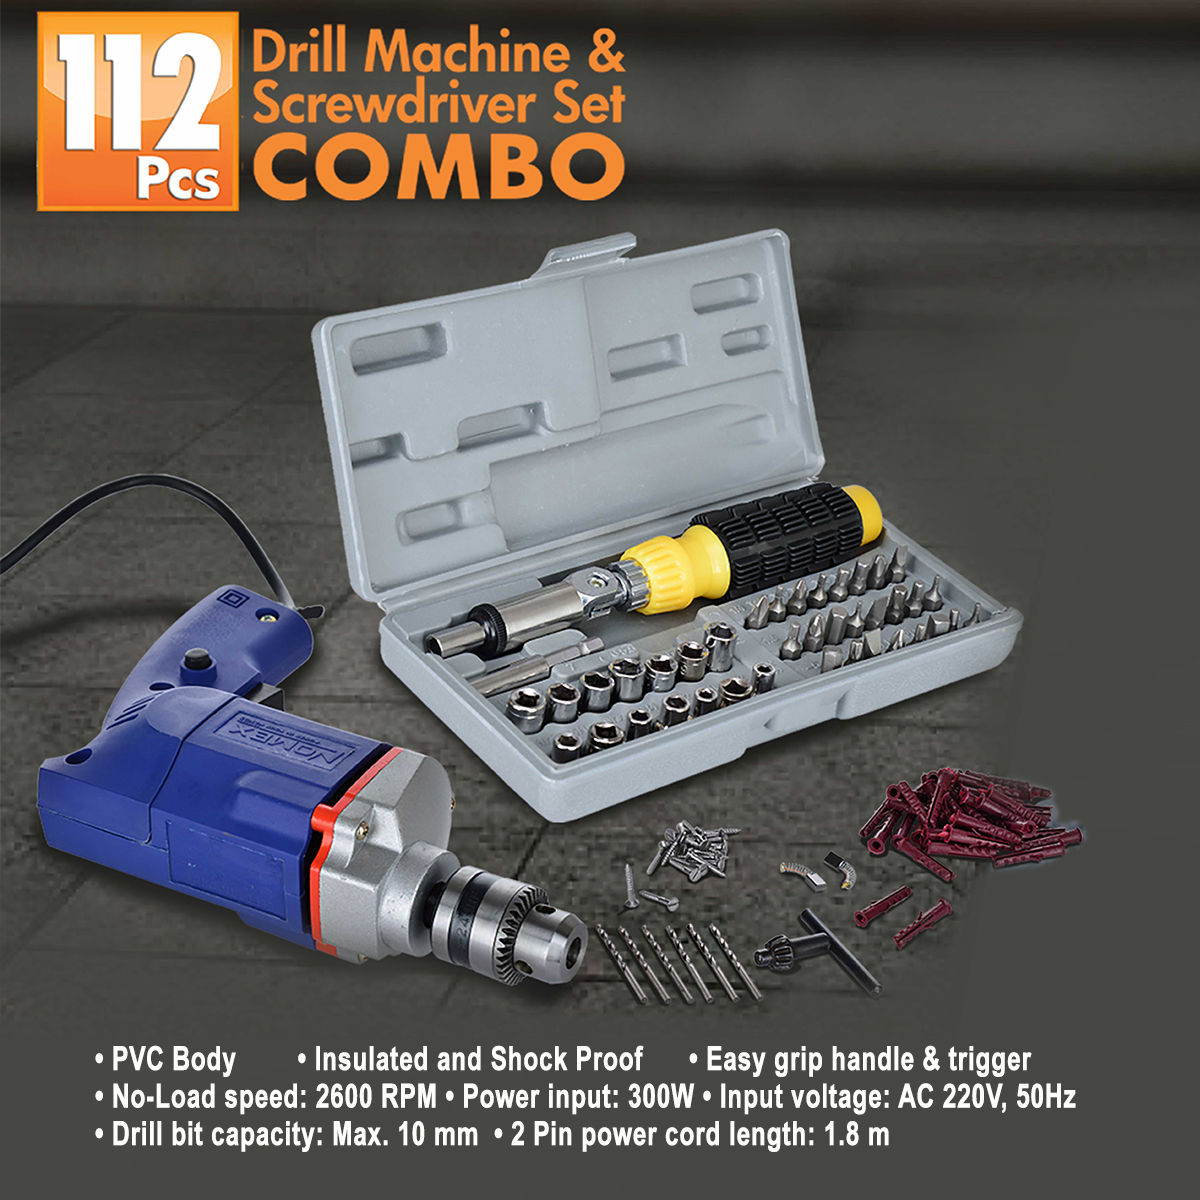 buy 112 pcs drill machine screwdriver set combo online at best price in india on. Black Bedroom Furniture Sets. Home Design Ideas